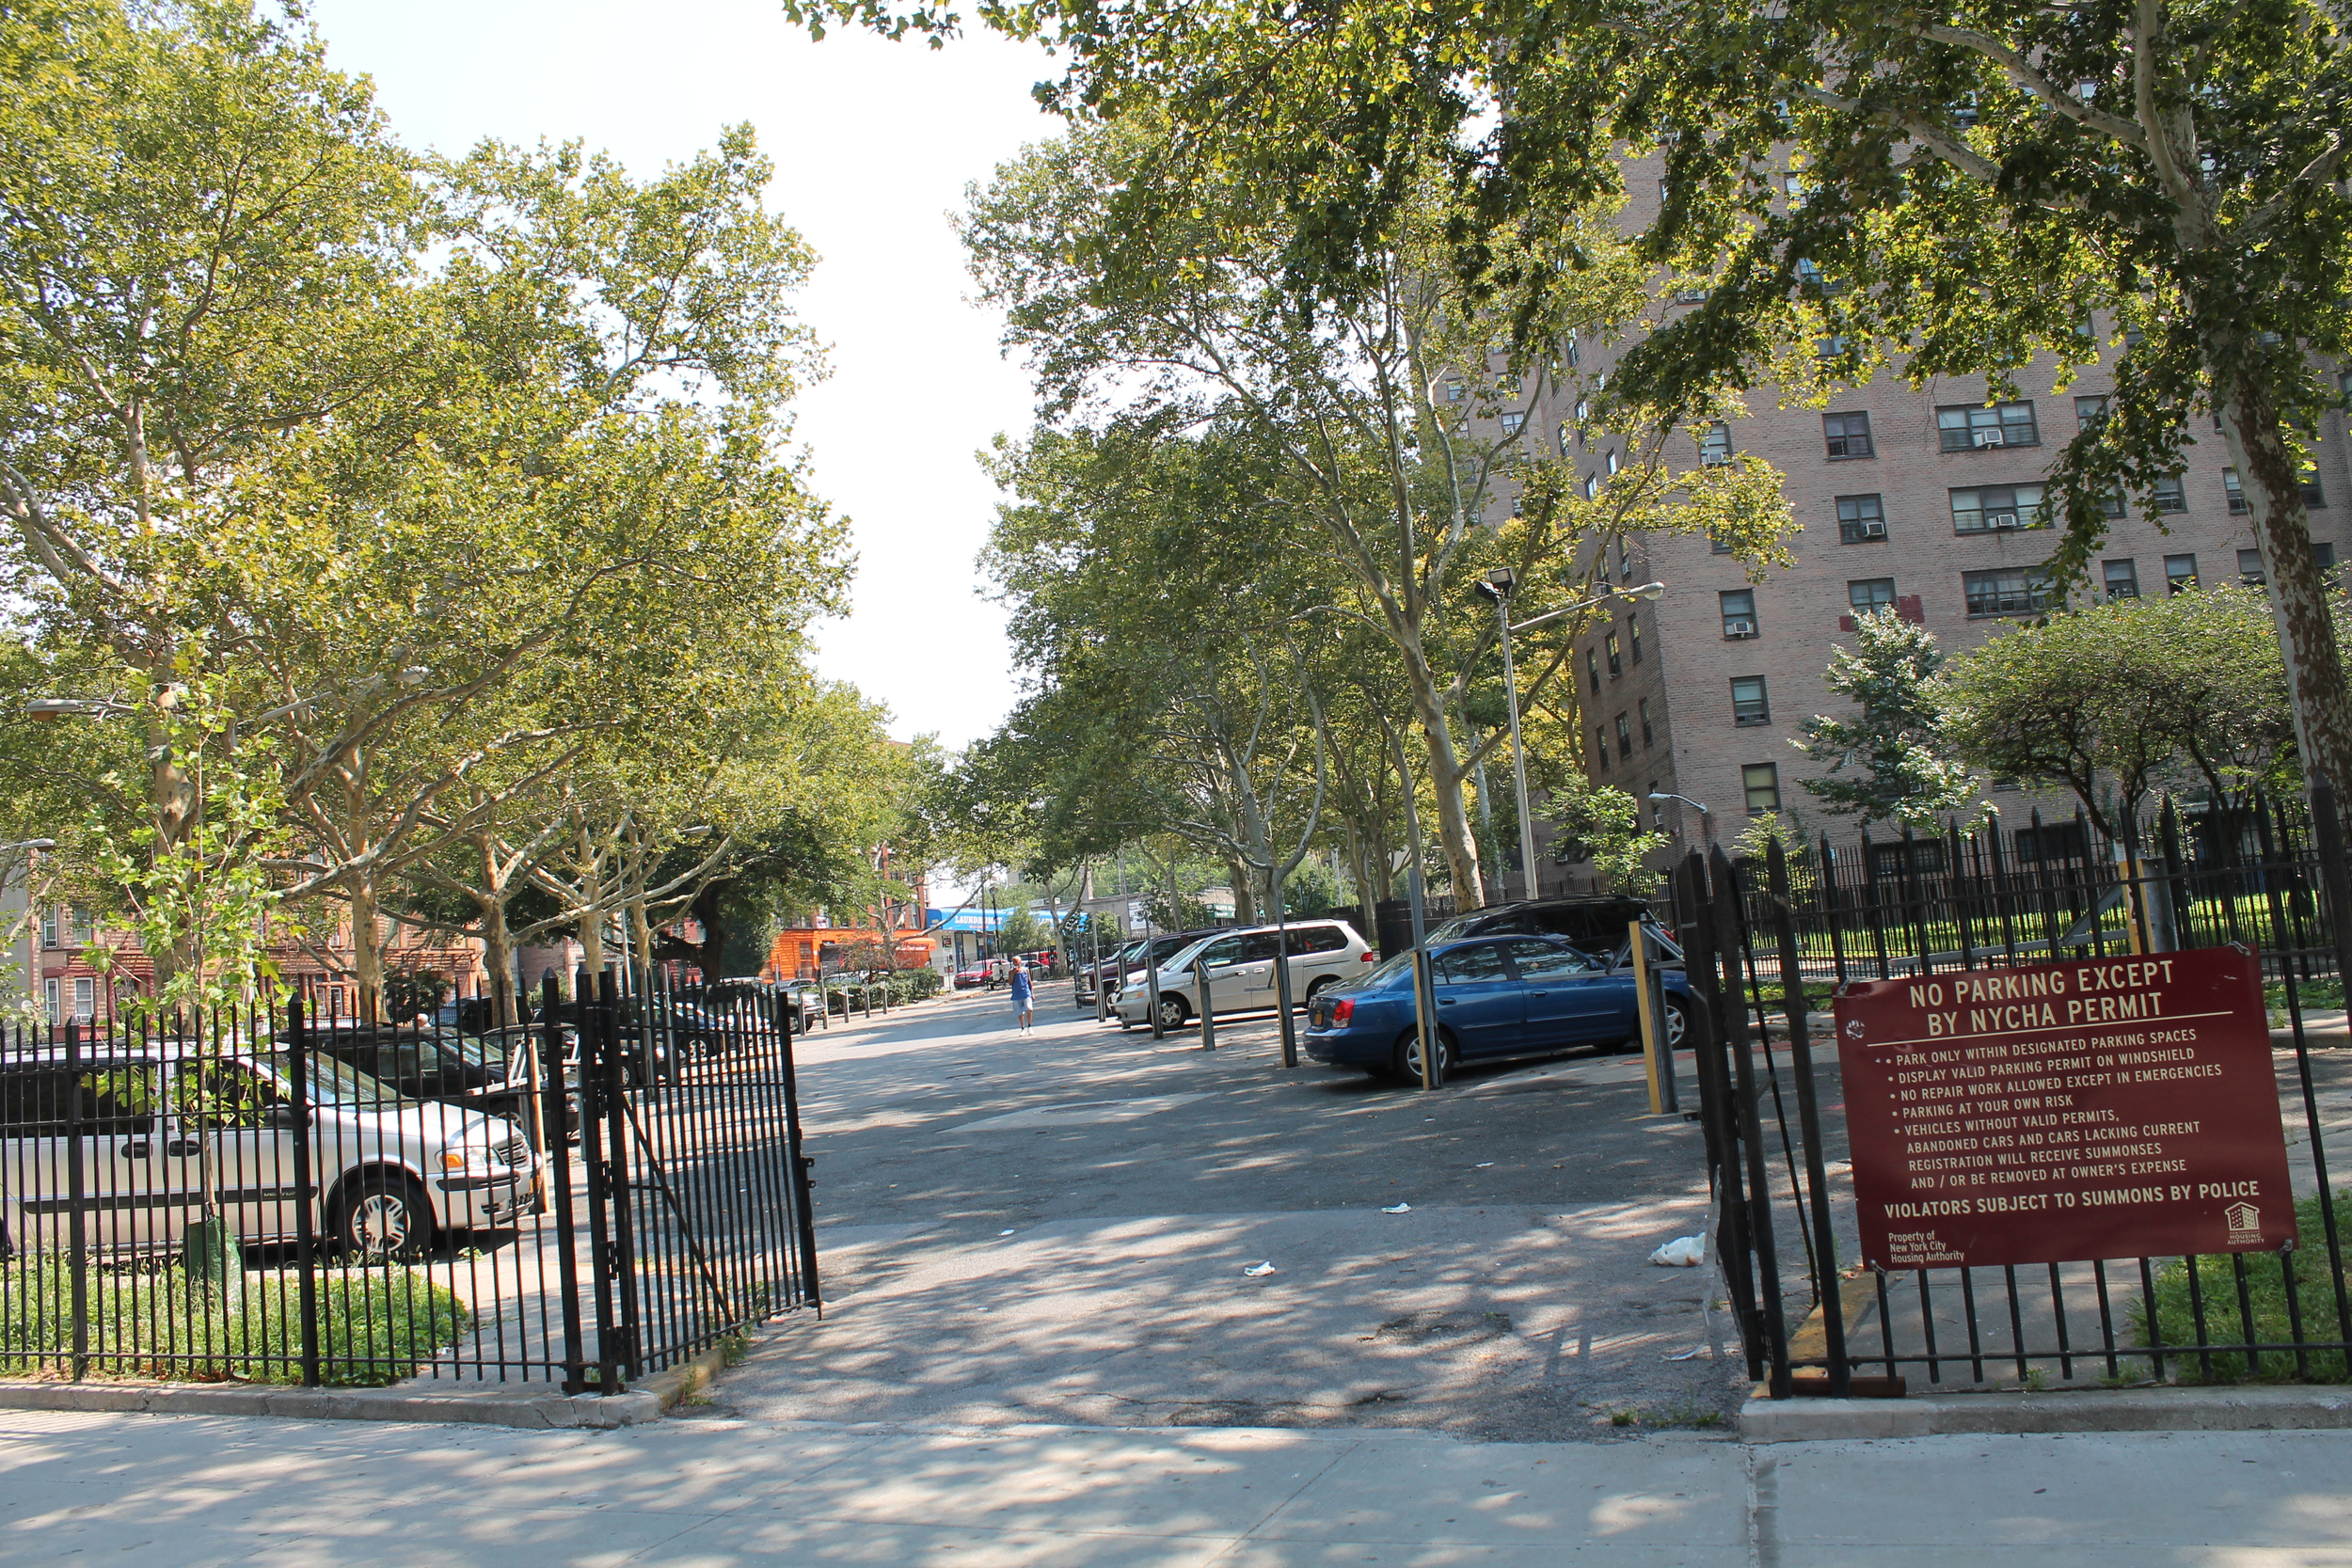 """A gated parking lot at the  Mill Brook Houses  in Mott Haven, The Bronx, as seen on Monday, August 17, 2015.  New York City Housing Authority  CEO  Shola Olatoye  has said that spaces identified for its controversial infill plan to lease open lots on NYCHA properties to private real estate developers can be rationalised, because the proposed sites are """"strewn with trash"""" and not in use. However, the condition of the Mill Brook Houses parking lot was relatively well kept, except for discards that are typically wind-blown from city sidewalks. Source : Louis Flores/Progress Queens"""